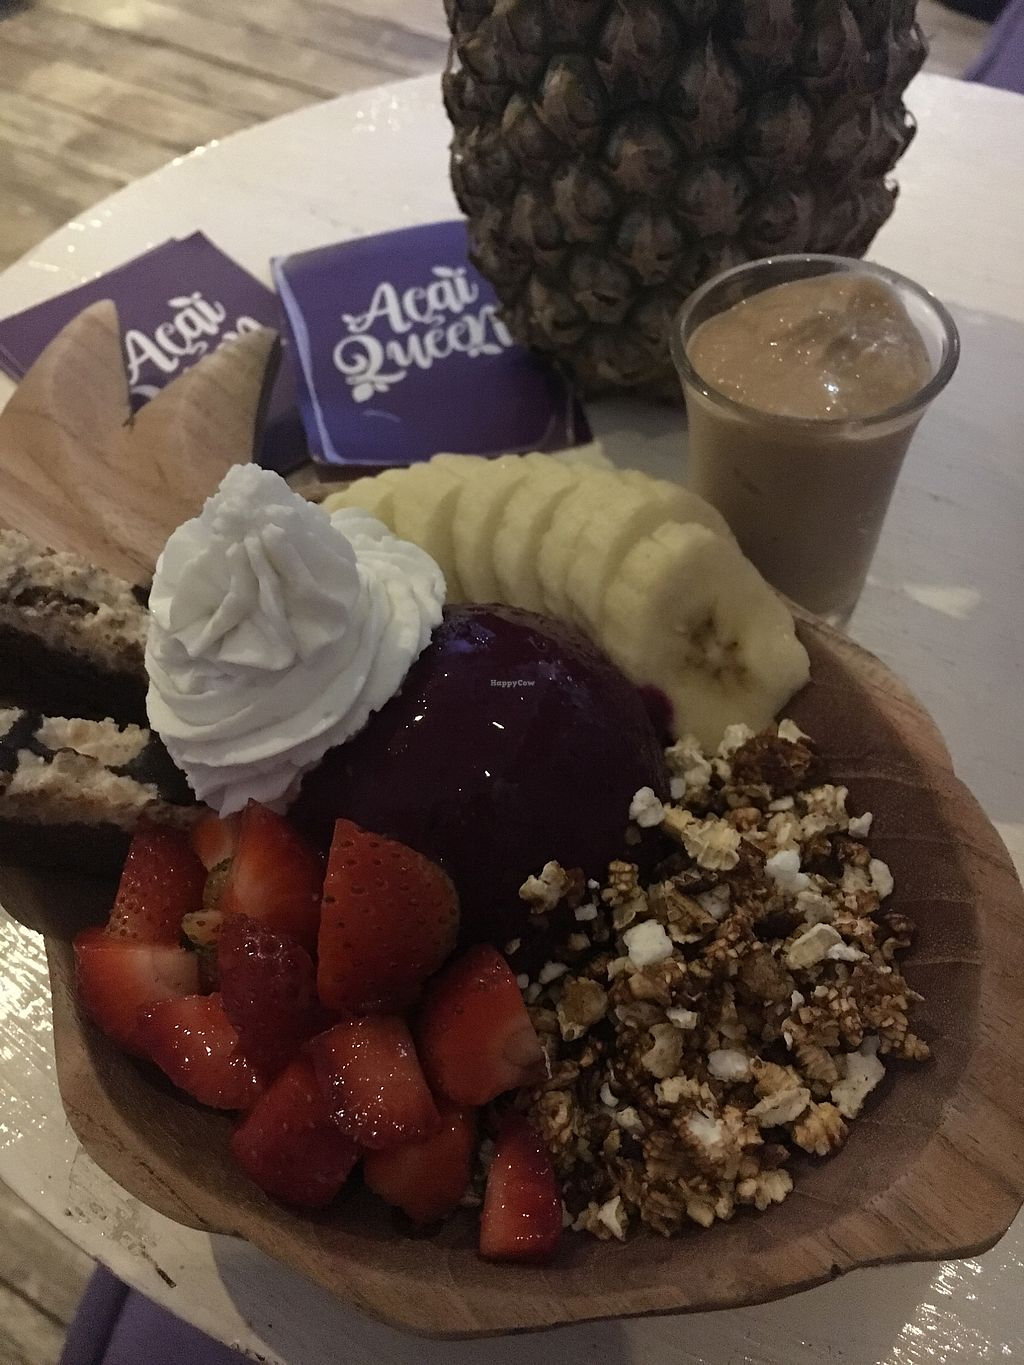 "Photo of Acai Queen  by <a href=""/members/profile/frontiercity"">frontiercity</a> <br/>Amazzzzzing <br/> February 16, 2018  - <a href='/contact/abuse/image/105730/359835'>Report</a>"